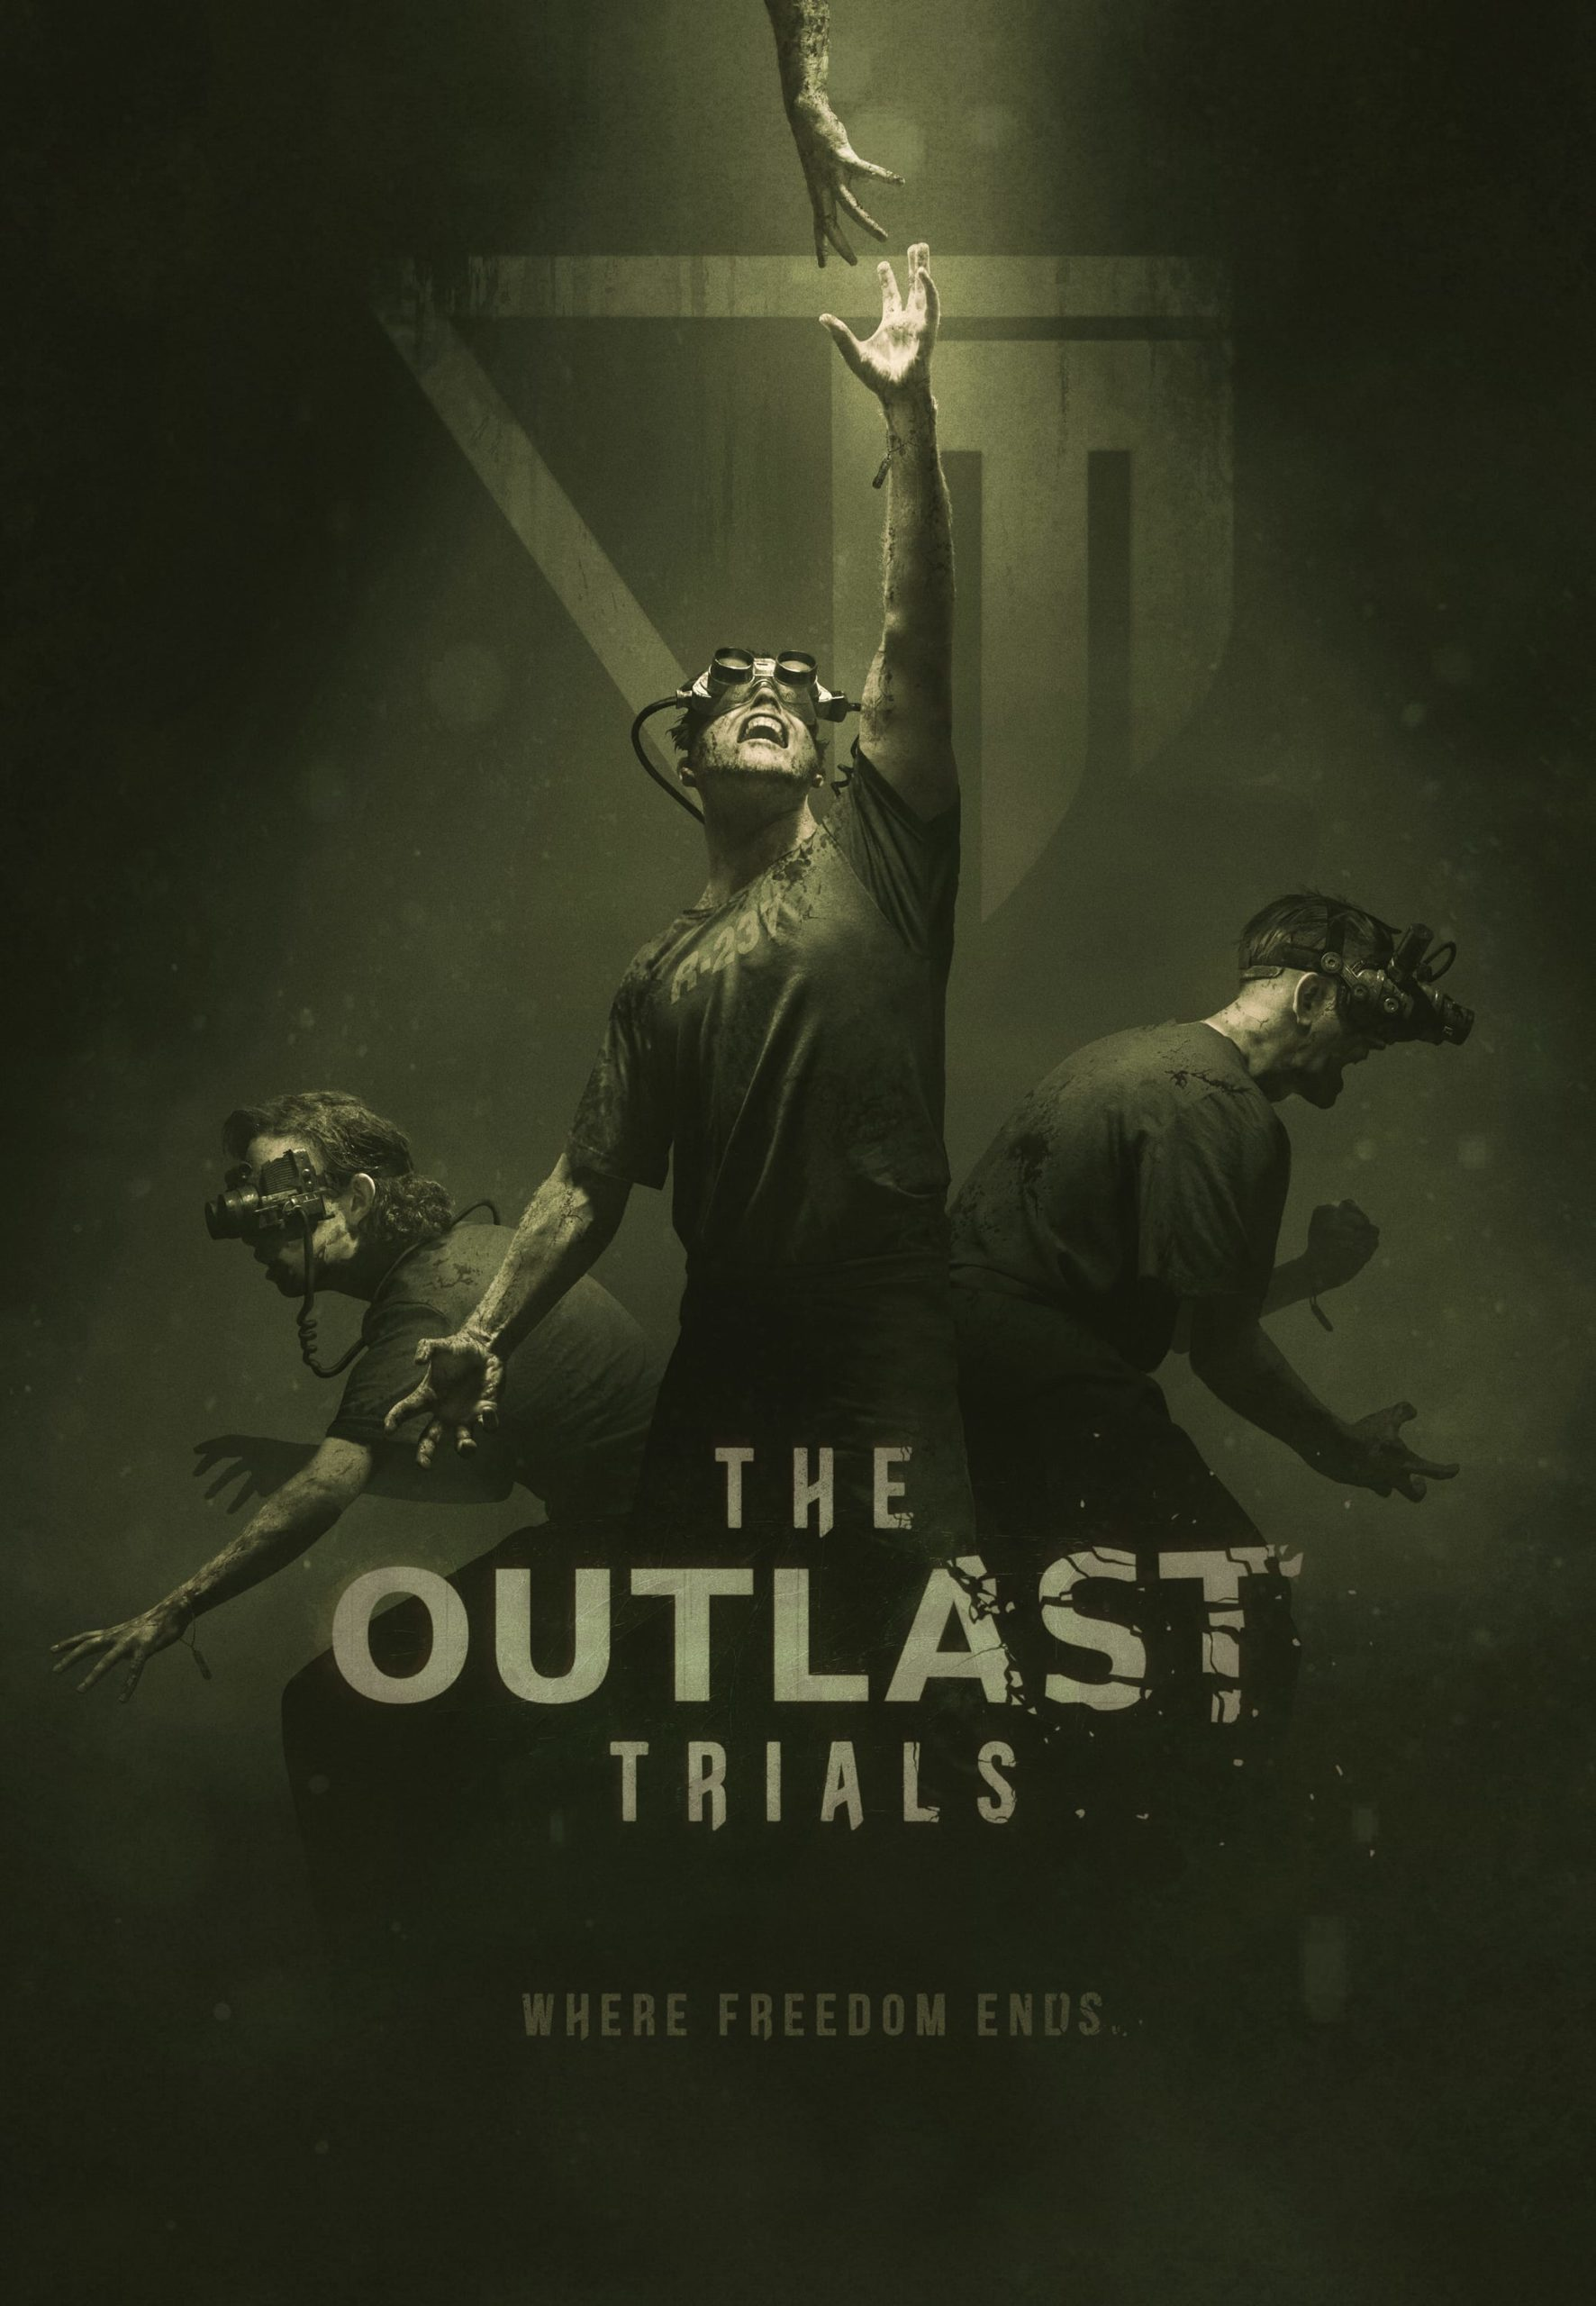 Outlast Trials 12 04 19